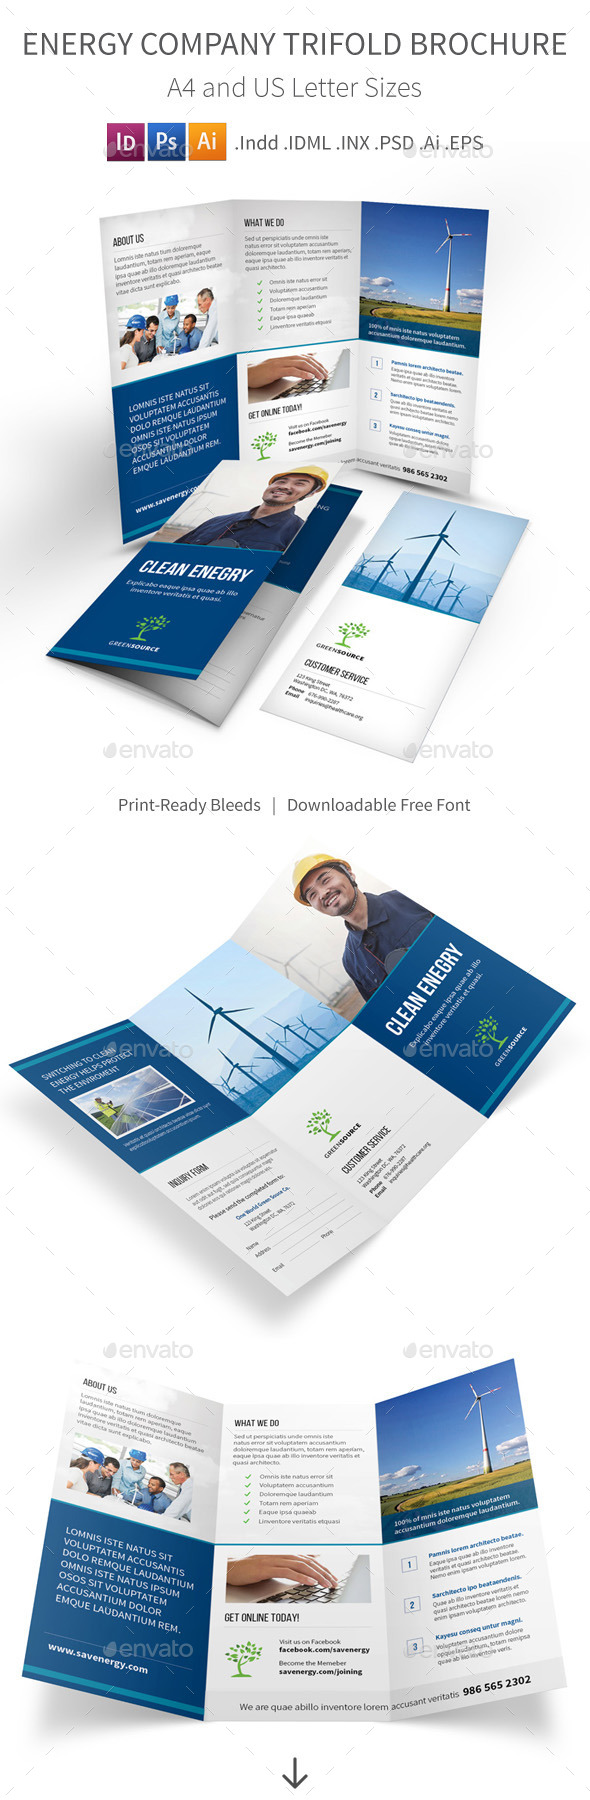 GraphicRiver Energy Company Trifold Brochure 9616114